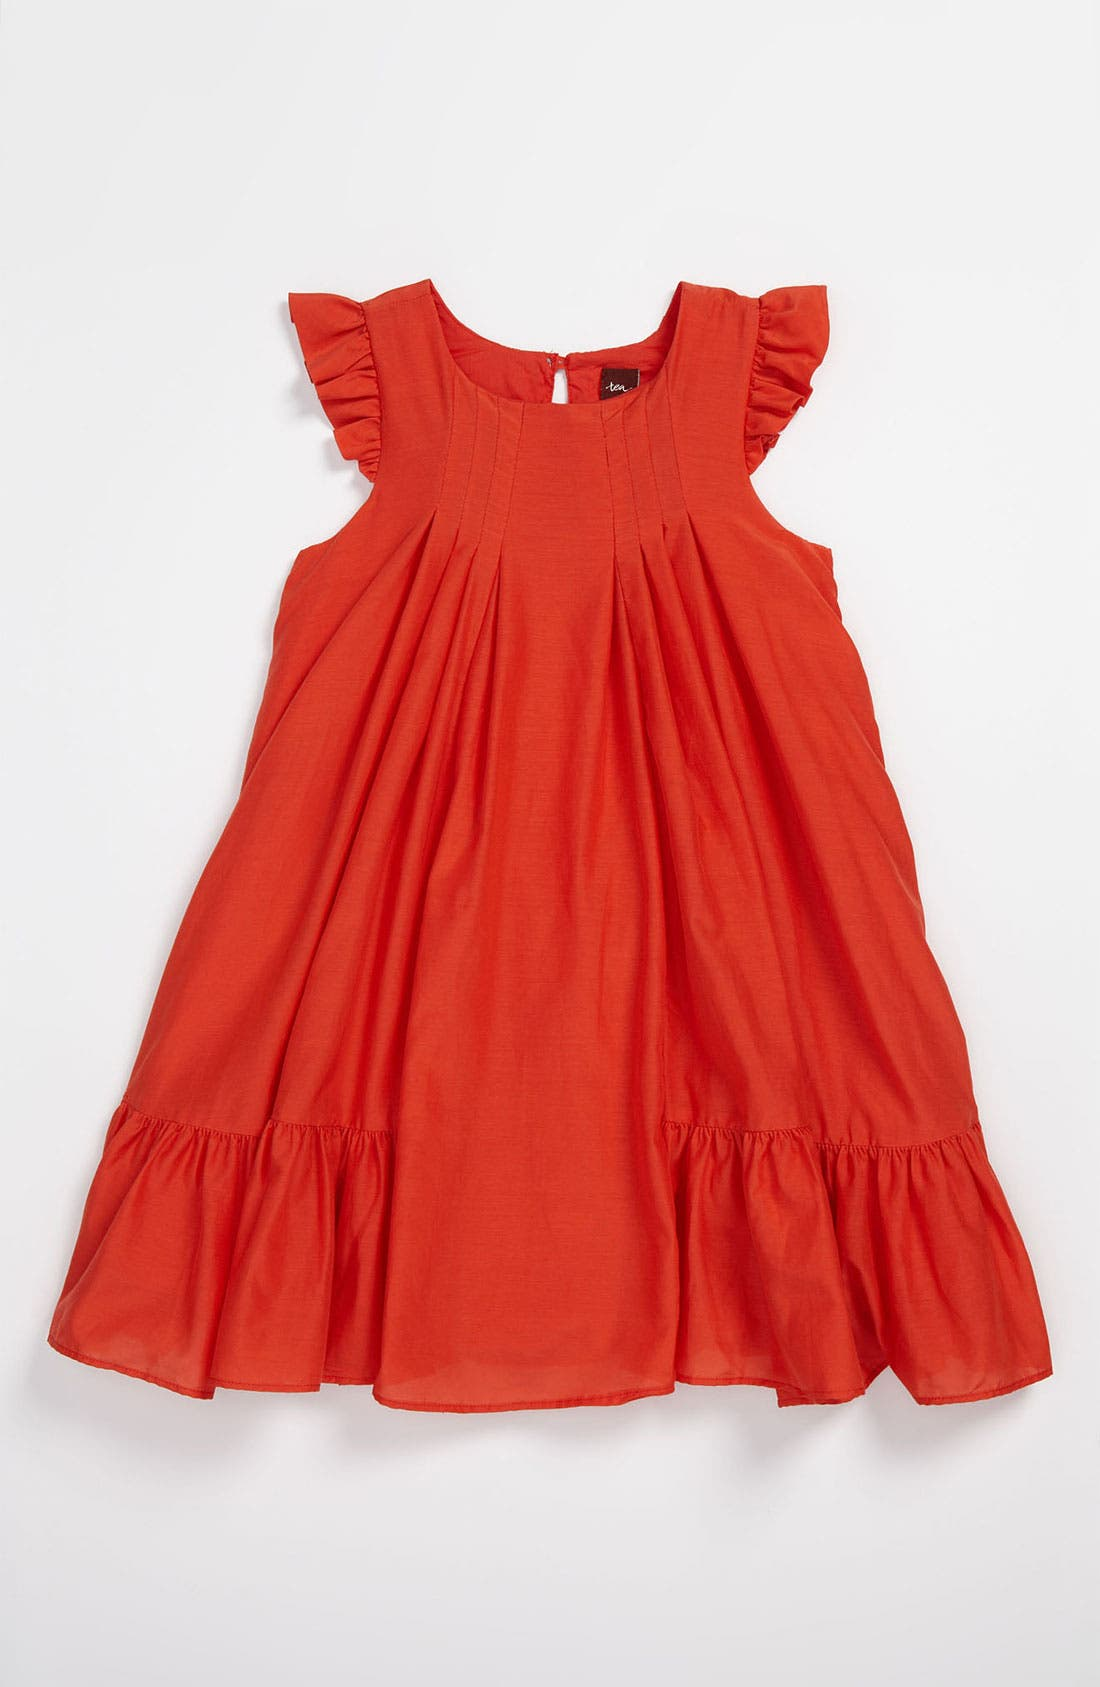 Alternate Image 1 Selected - Tea Collection Party Dress (Little Girls & Big Girls)